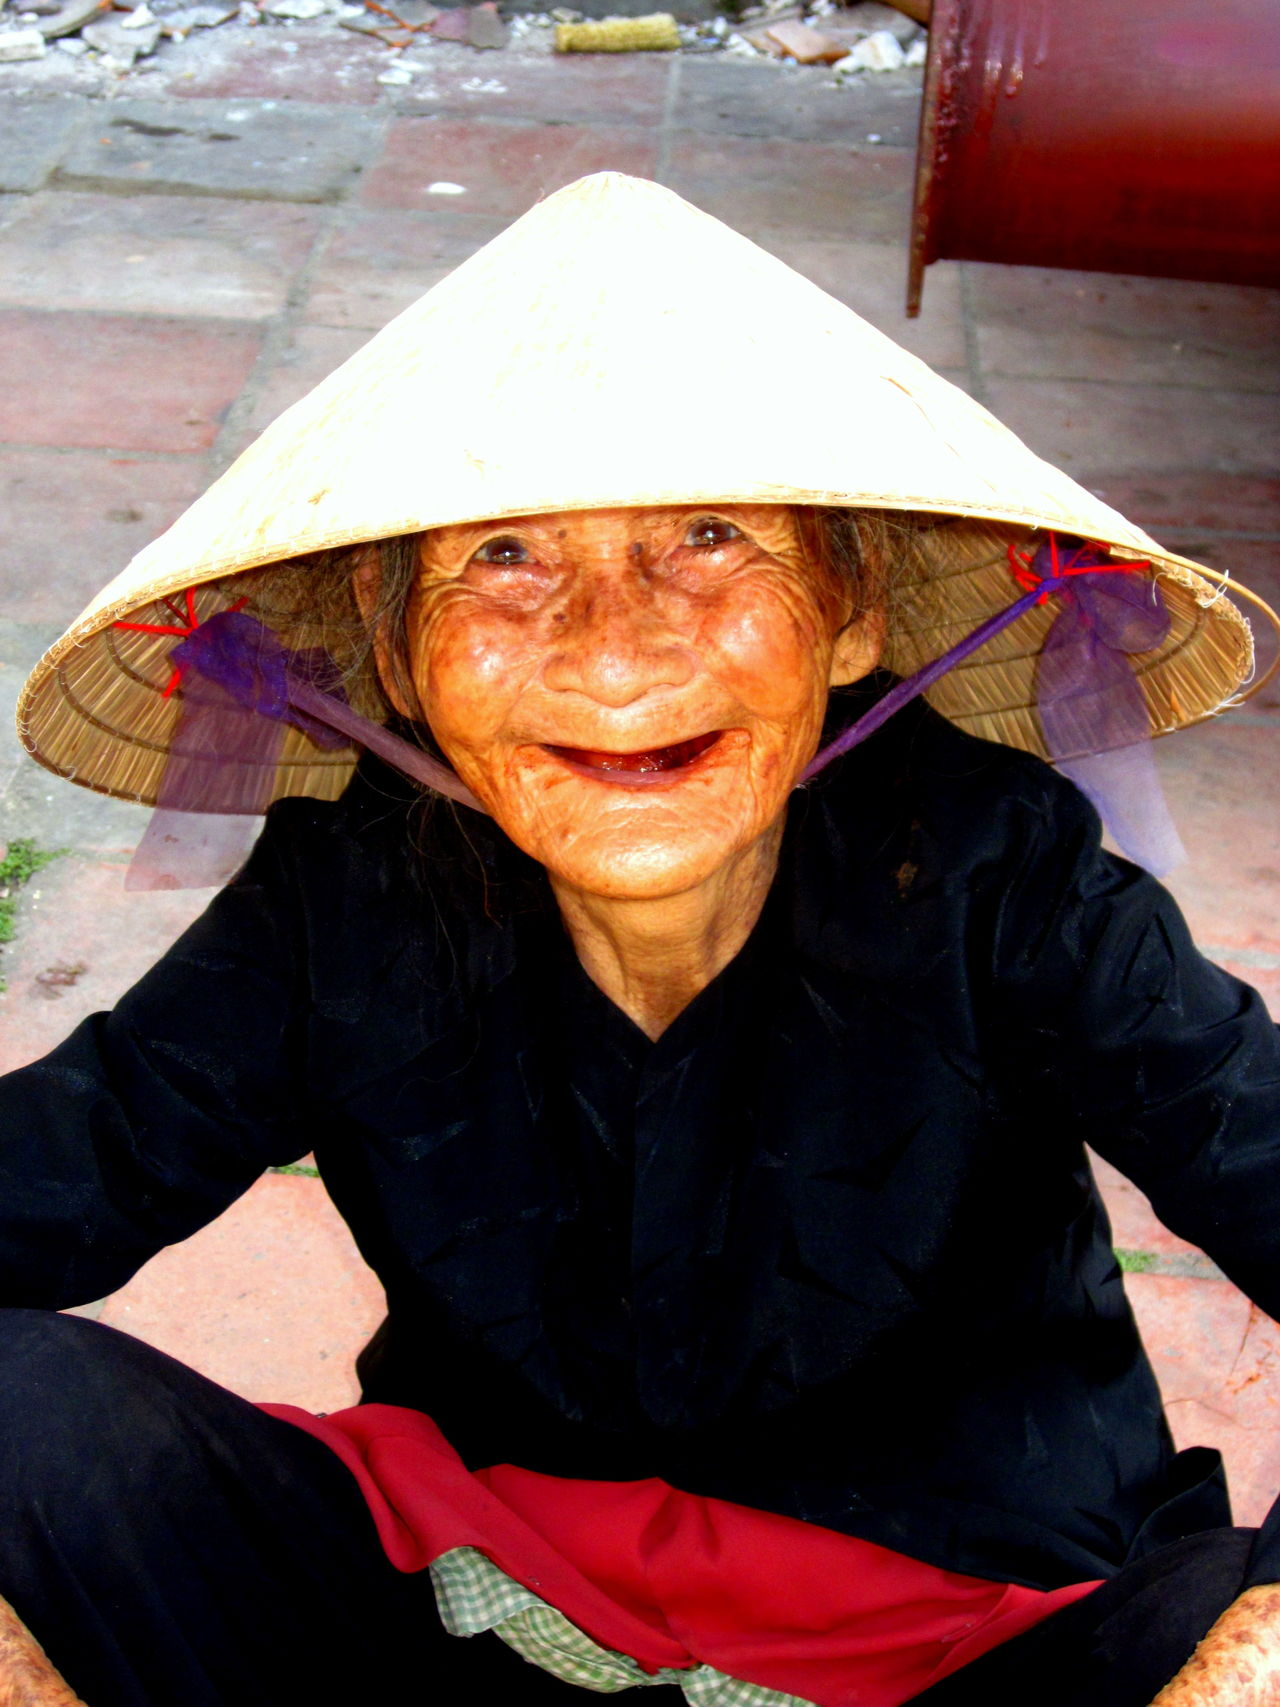 Conical Hat Day Front View Lifestyles Loving Life! Non La Old Lady Old Woman Person Portrait South East Asia Toothless Vietnam Vietnamese Vietnamese Conical Hat Vietnamese Women Vietnamese Working Woman First Eyeem Photo